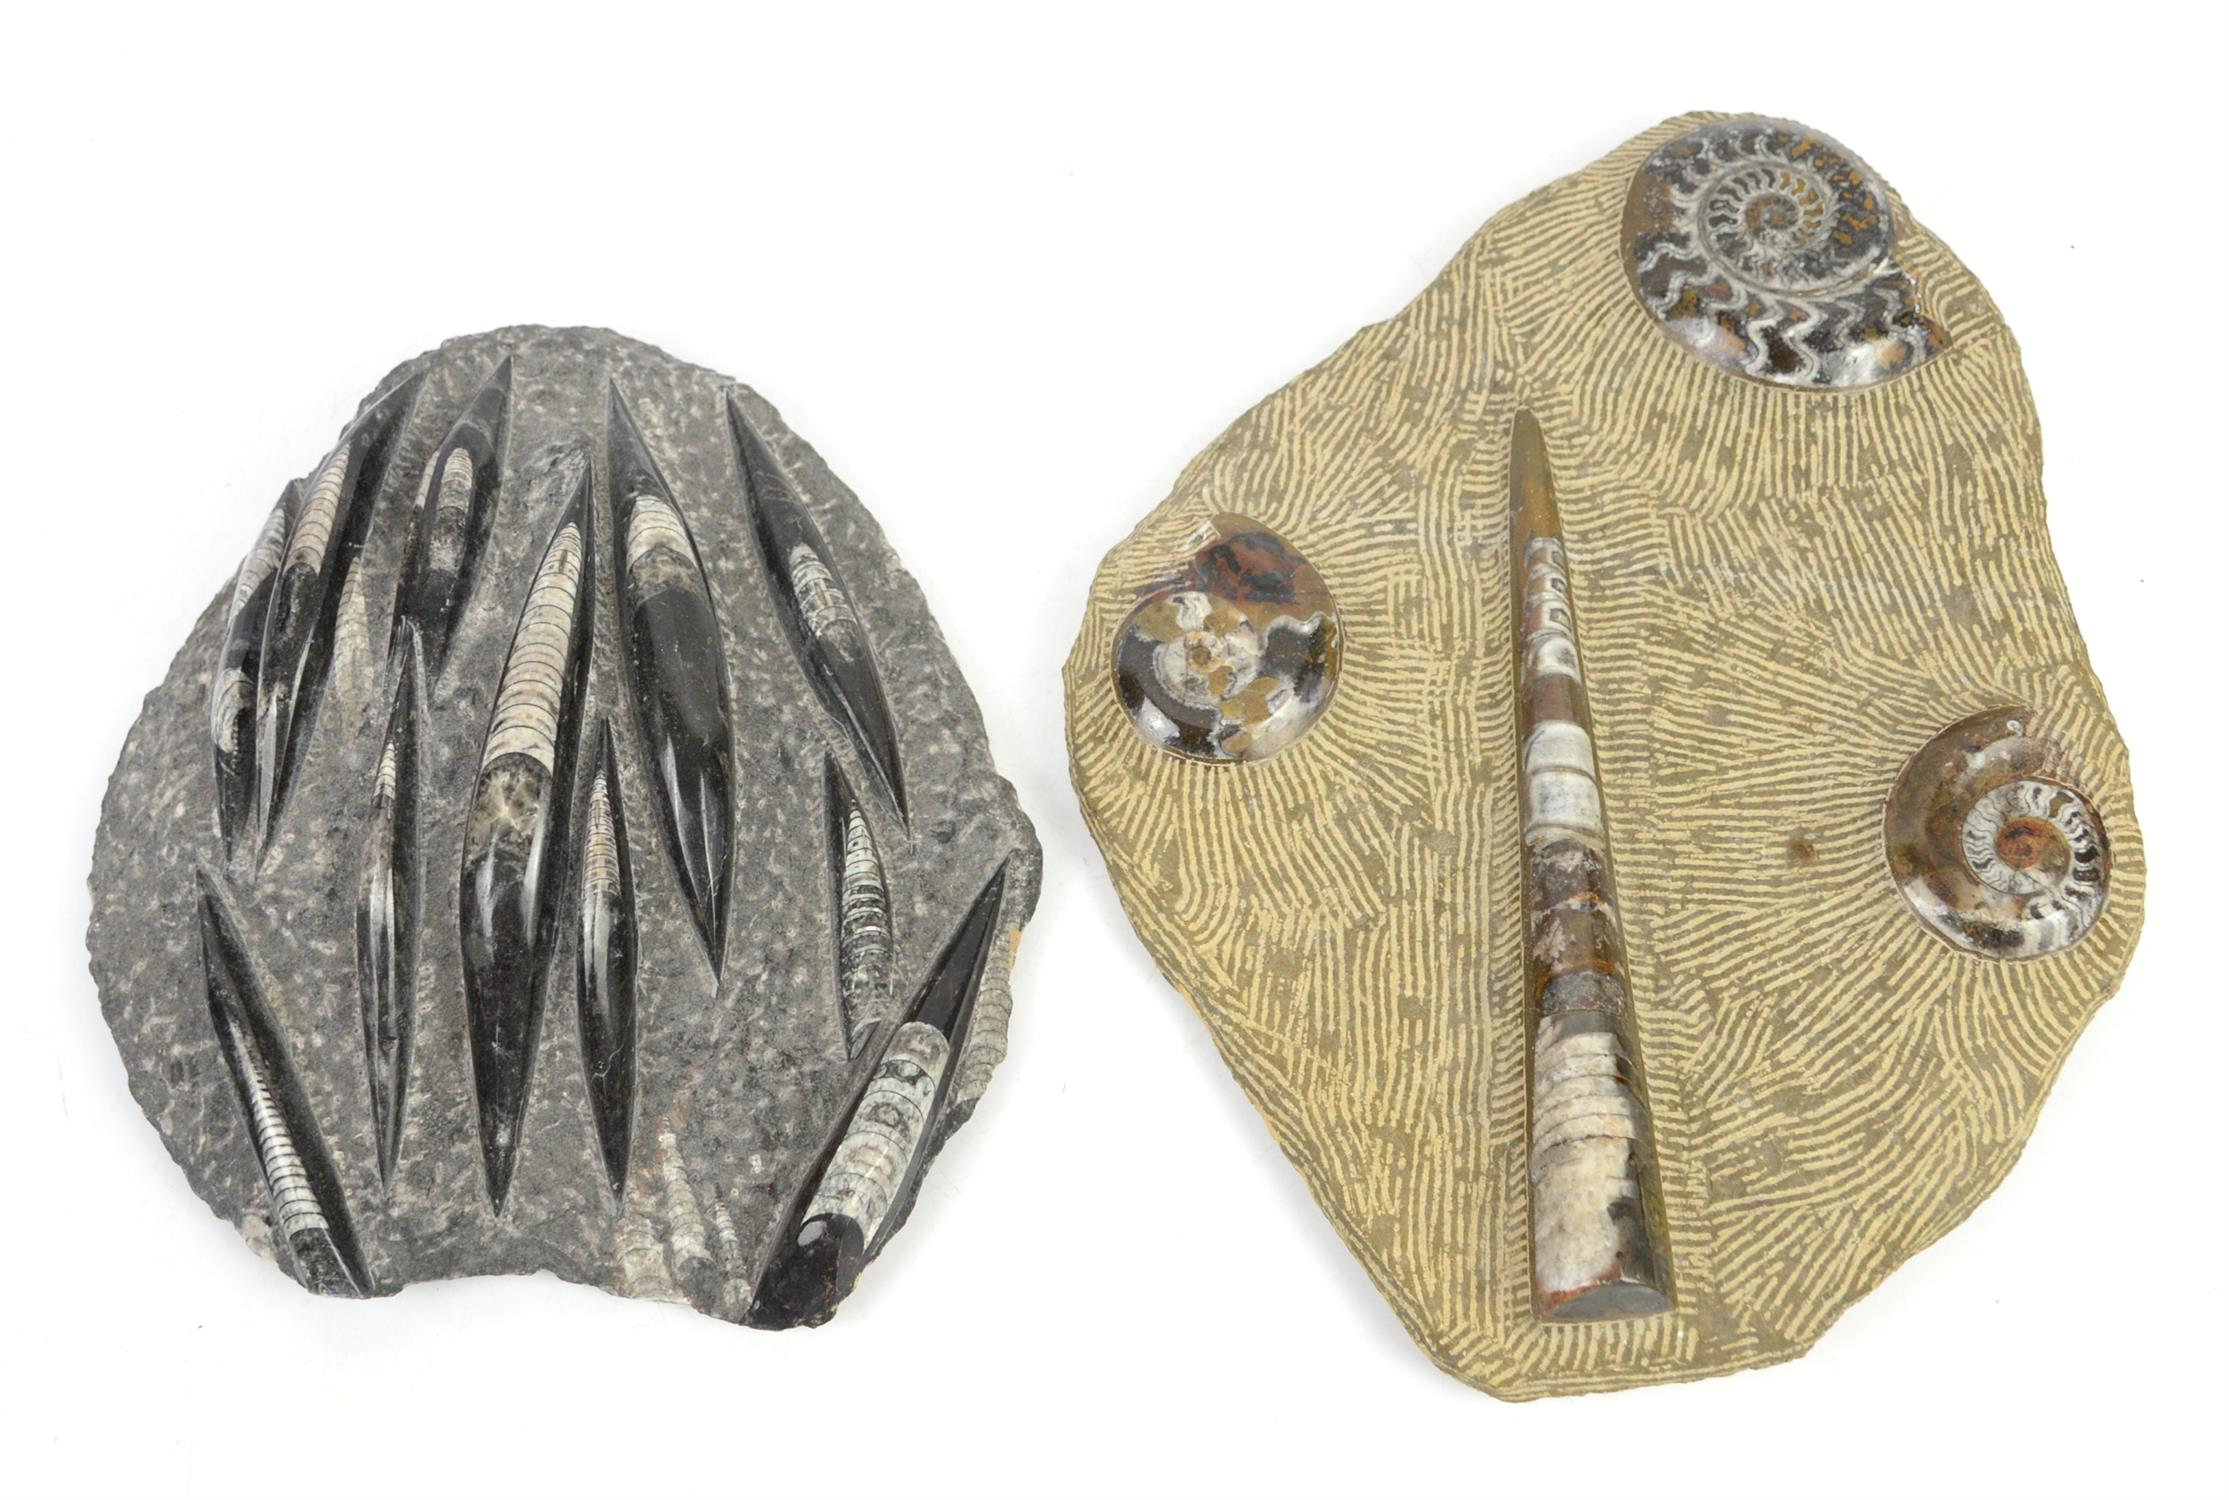 Moroccan seabed plaque displaying amonites and orthoceras fossils, W42 x D32cm, together with